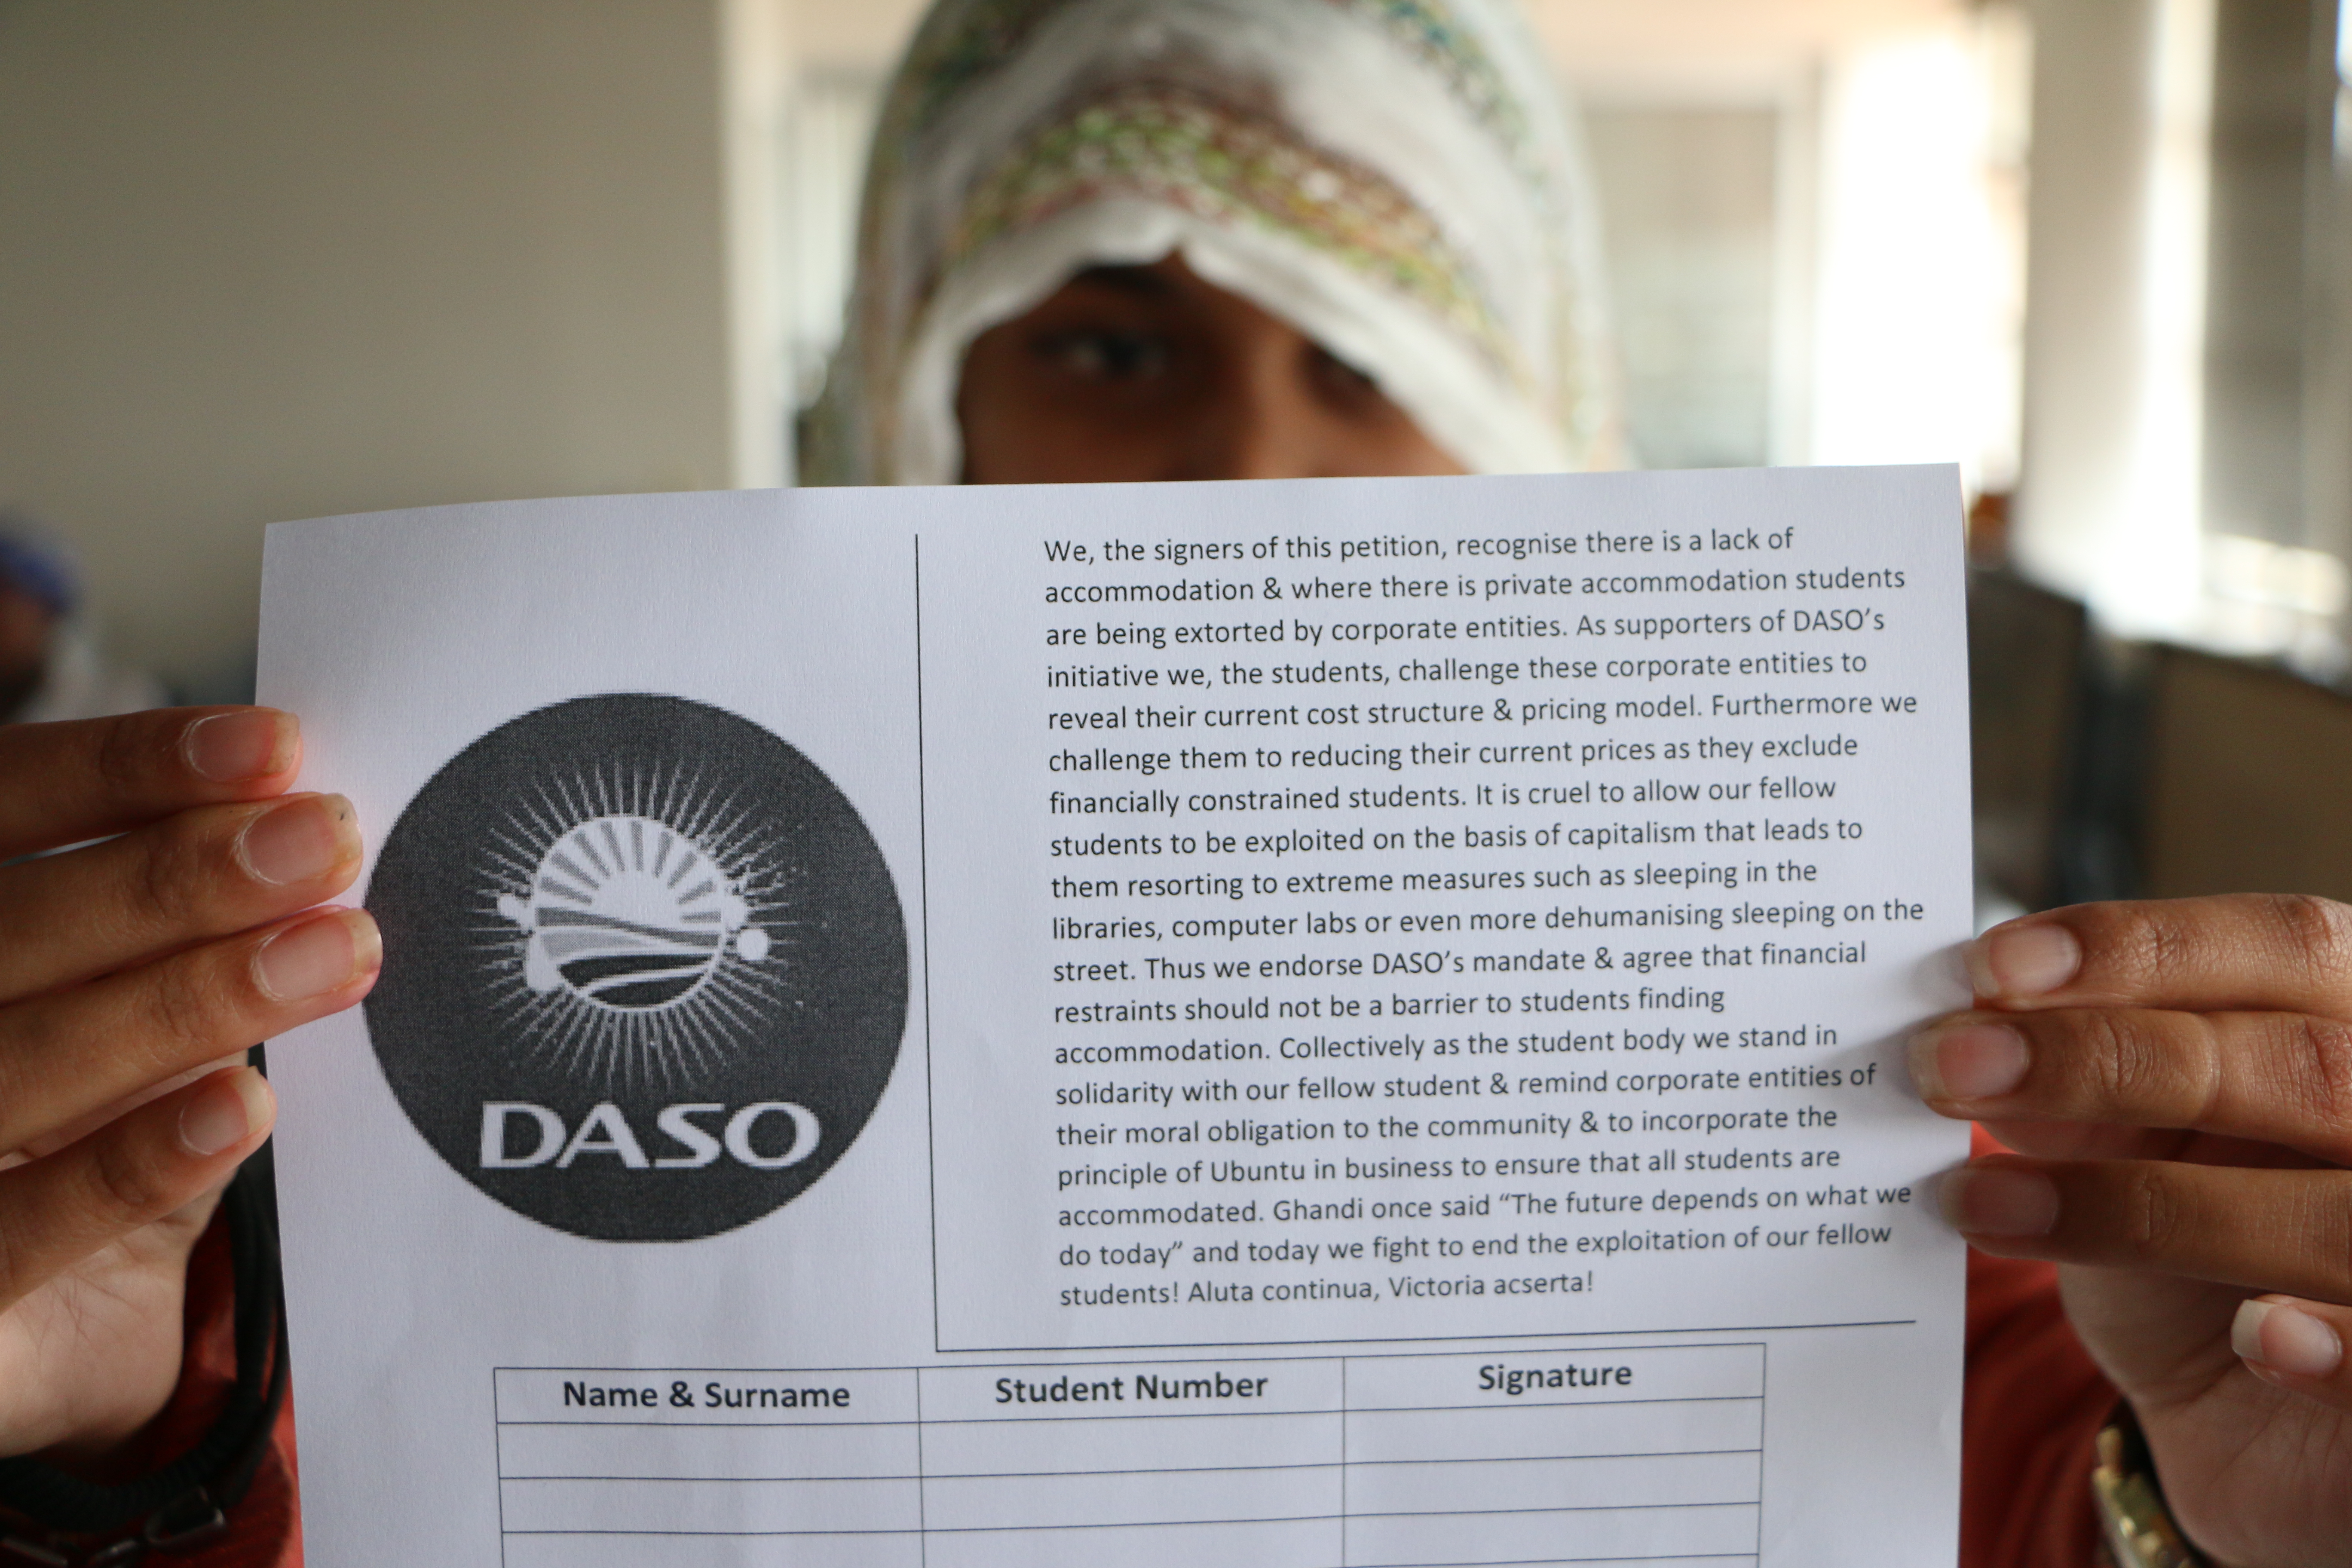 DASO campaigns for student accommodation